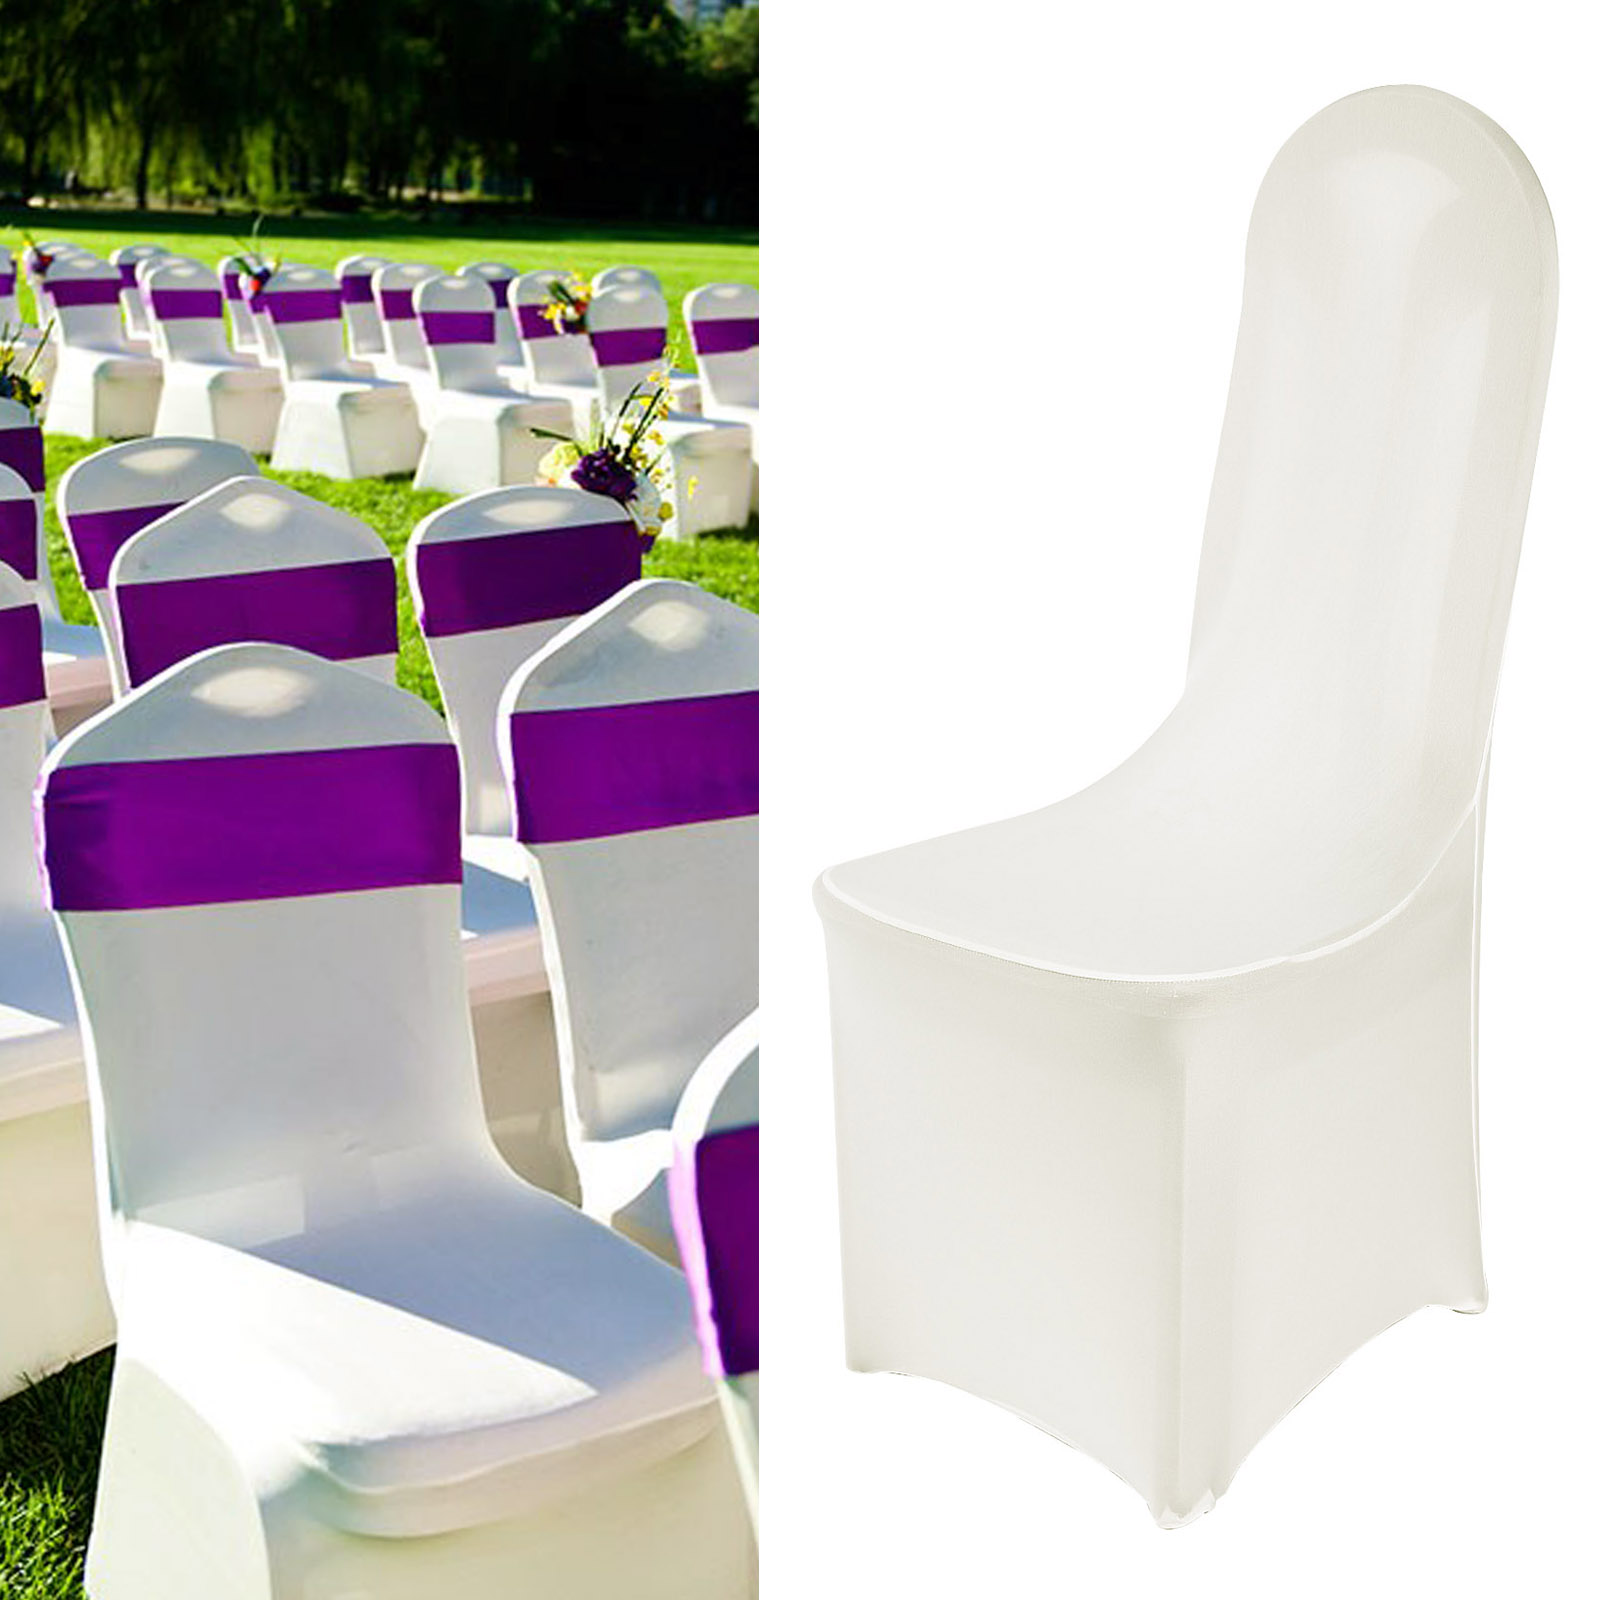 chair covers ebay uk white rocking chairs for sale spandex cover wedding party 50 pcs set